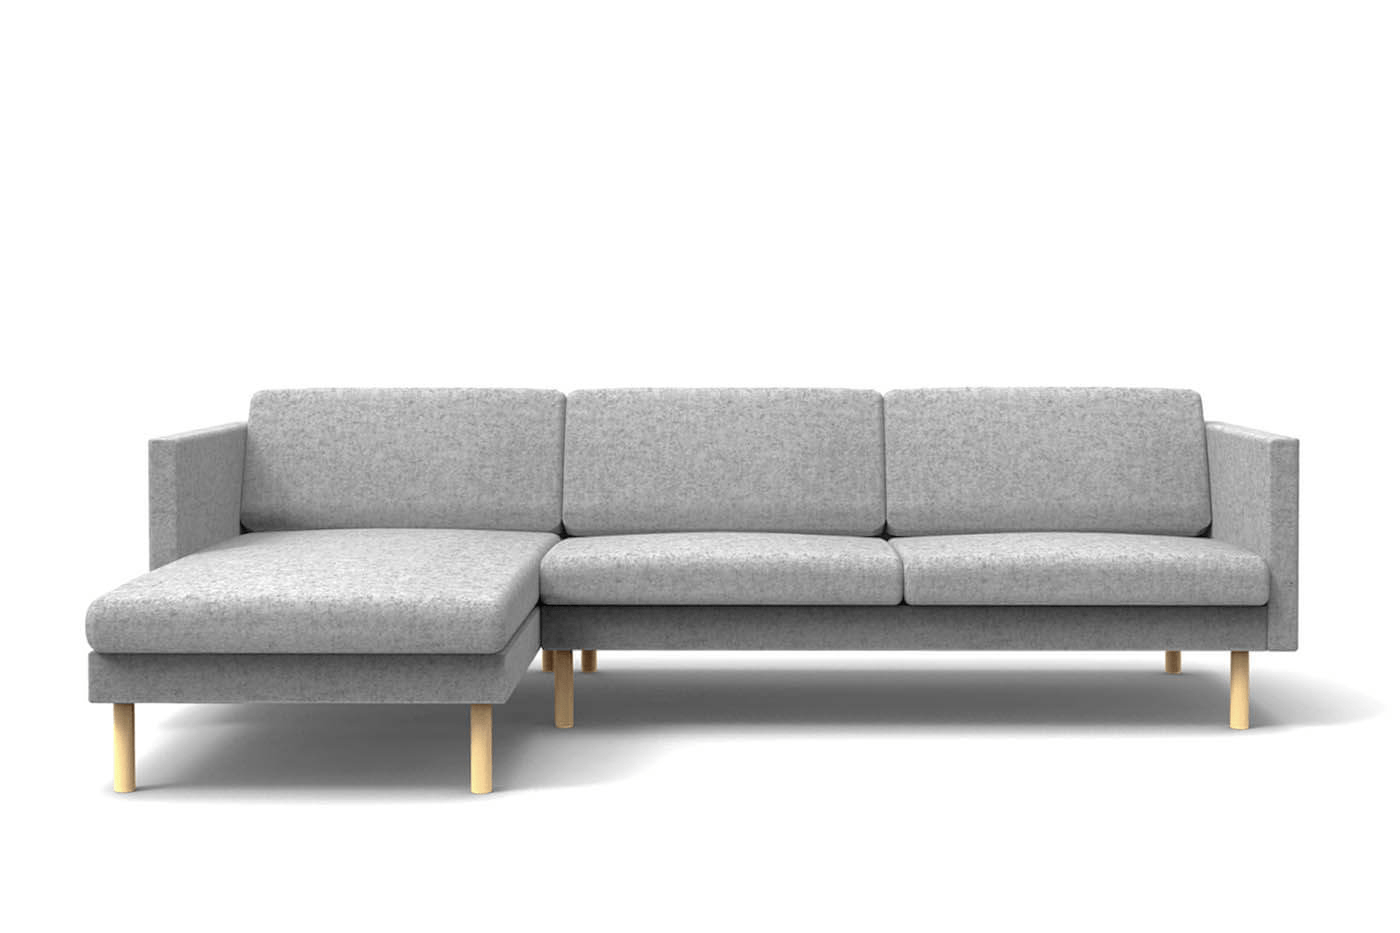 Sofa chaise lounge chaise lounges thesofa for Baroque chaise lounge sofa